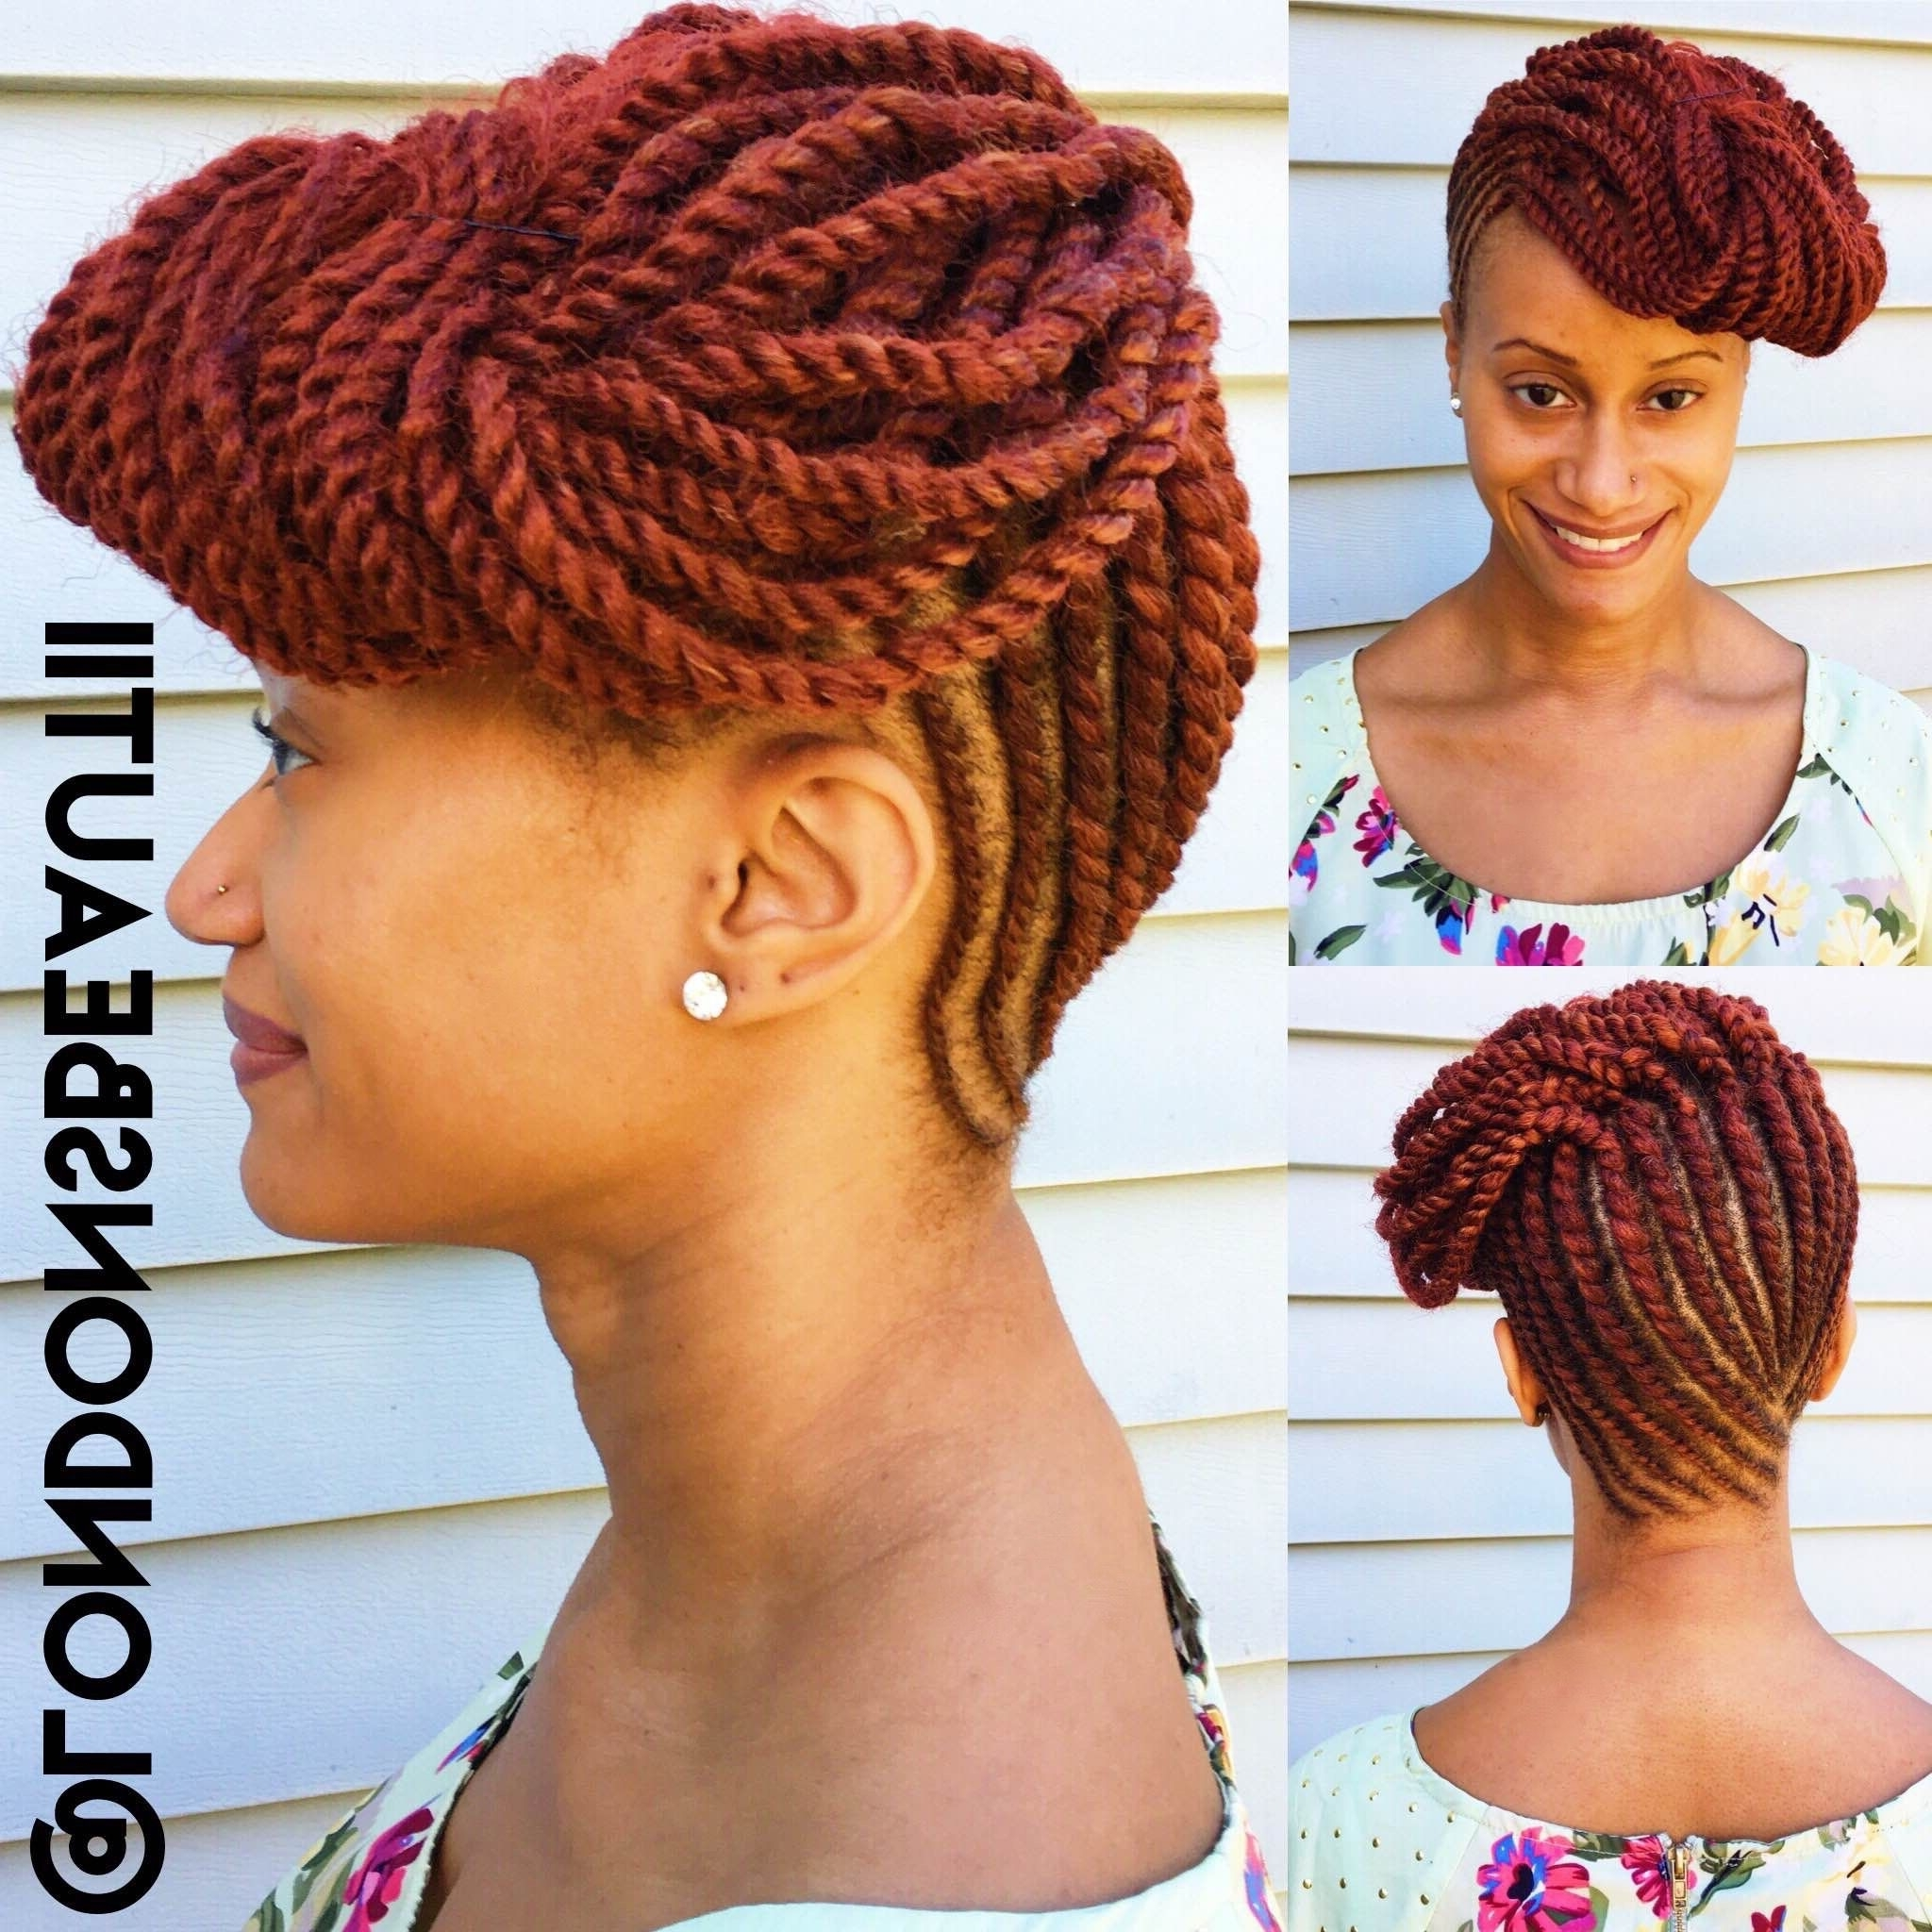 Flat Twist Updo (with Extensions) Donelondon's Beautii In Bowie Pertaining To Flat Twist Updo Hairstyles With Extensions (View 13 of 15)